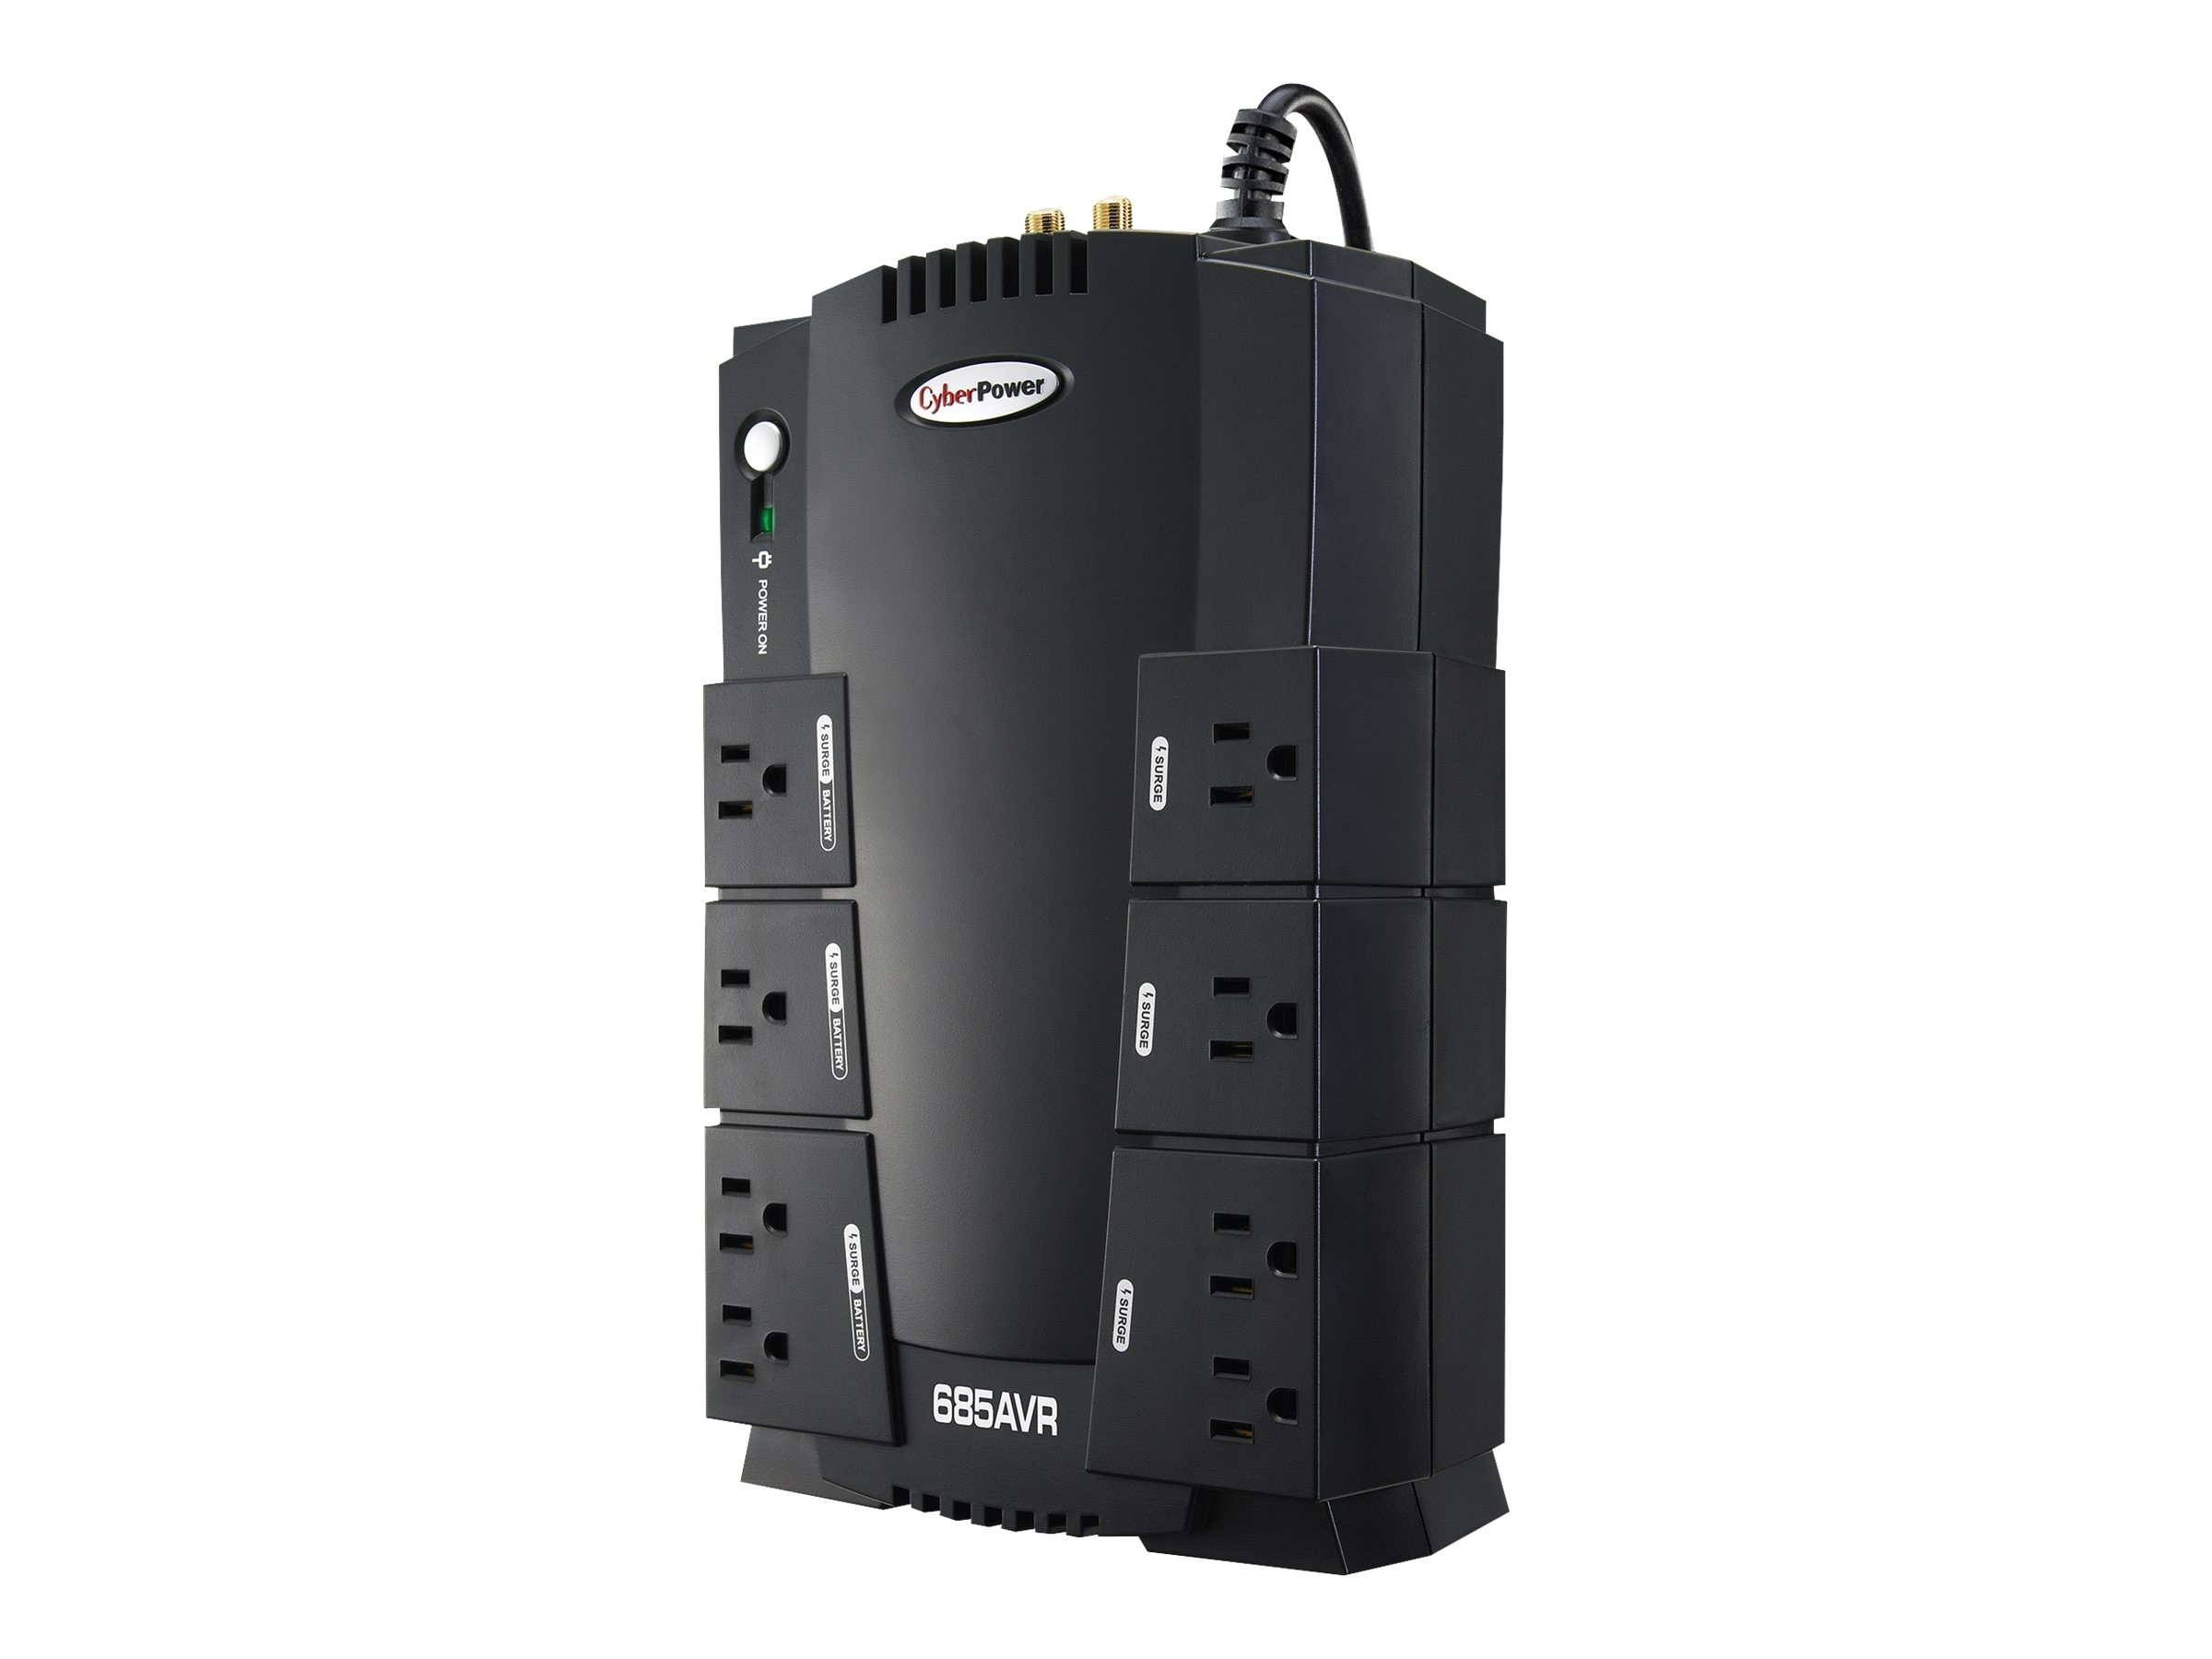 CyberPower 685VA 390W UPS AVR (8) Outlet RJ-11 RJ-45 Compact Design EMI RFI, CP685AVR, 6148428, Battery Backup/UPS